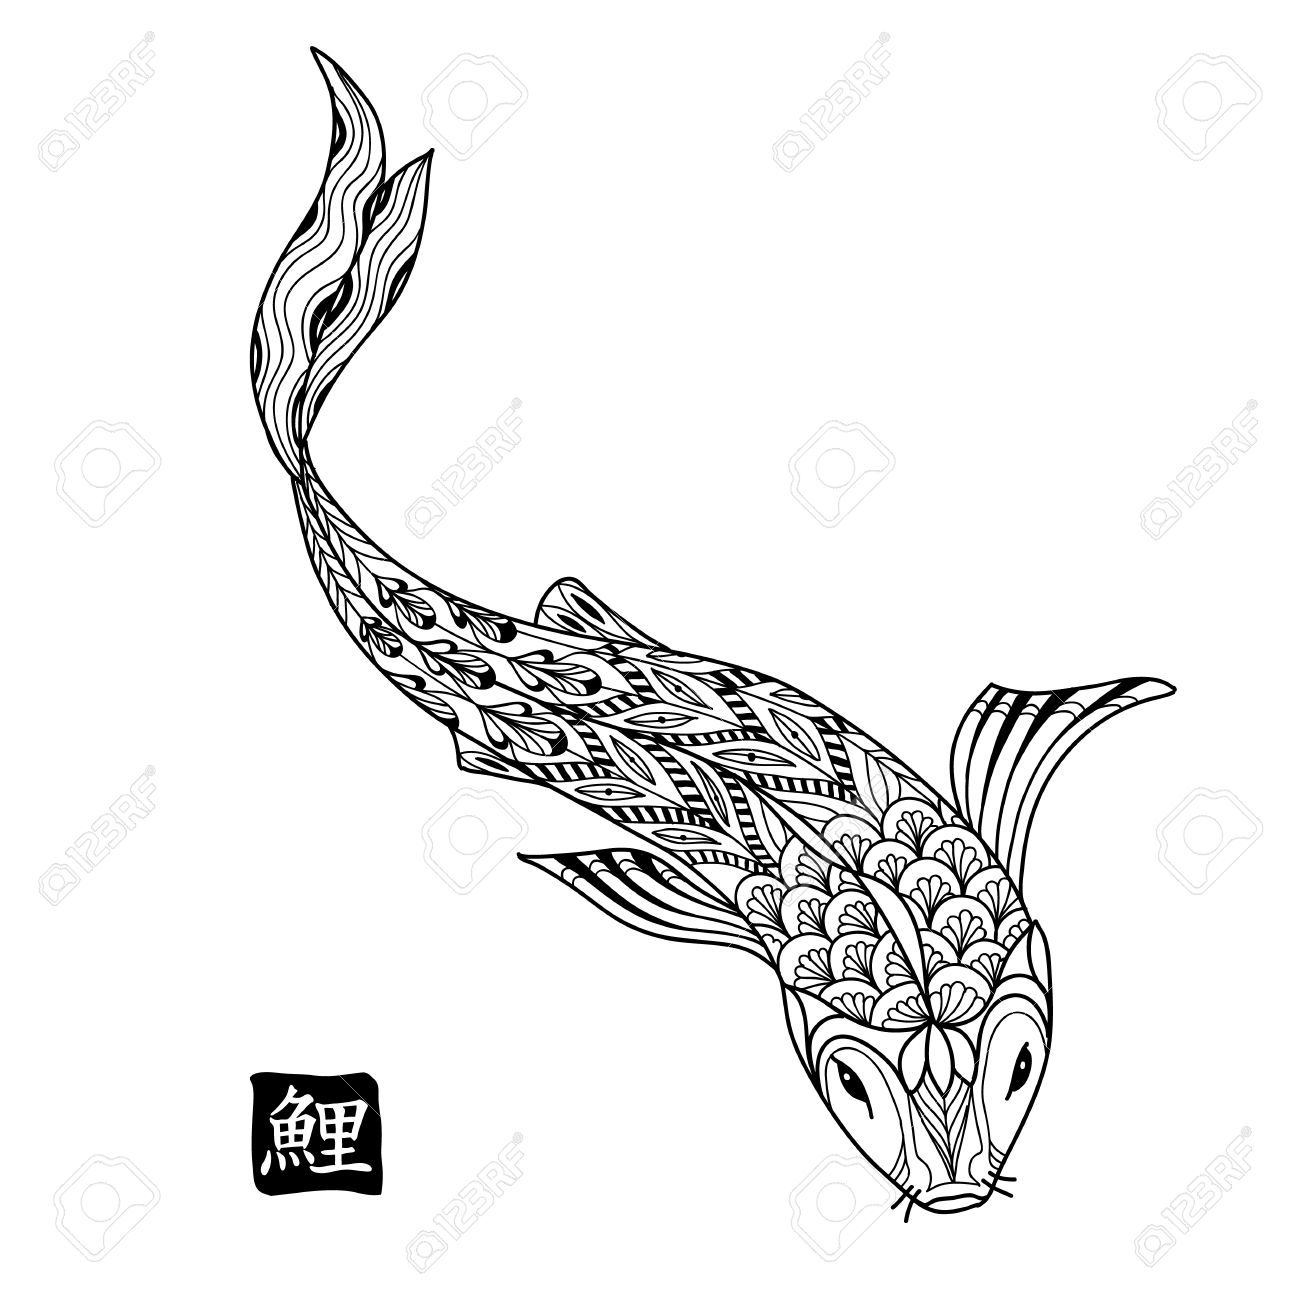 Hand Drawn Koi Fish Japanese Carp Line Drawing For Coloring Book Doodle Characters